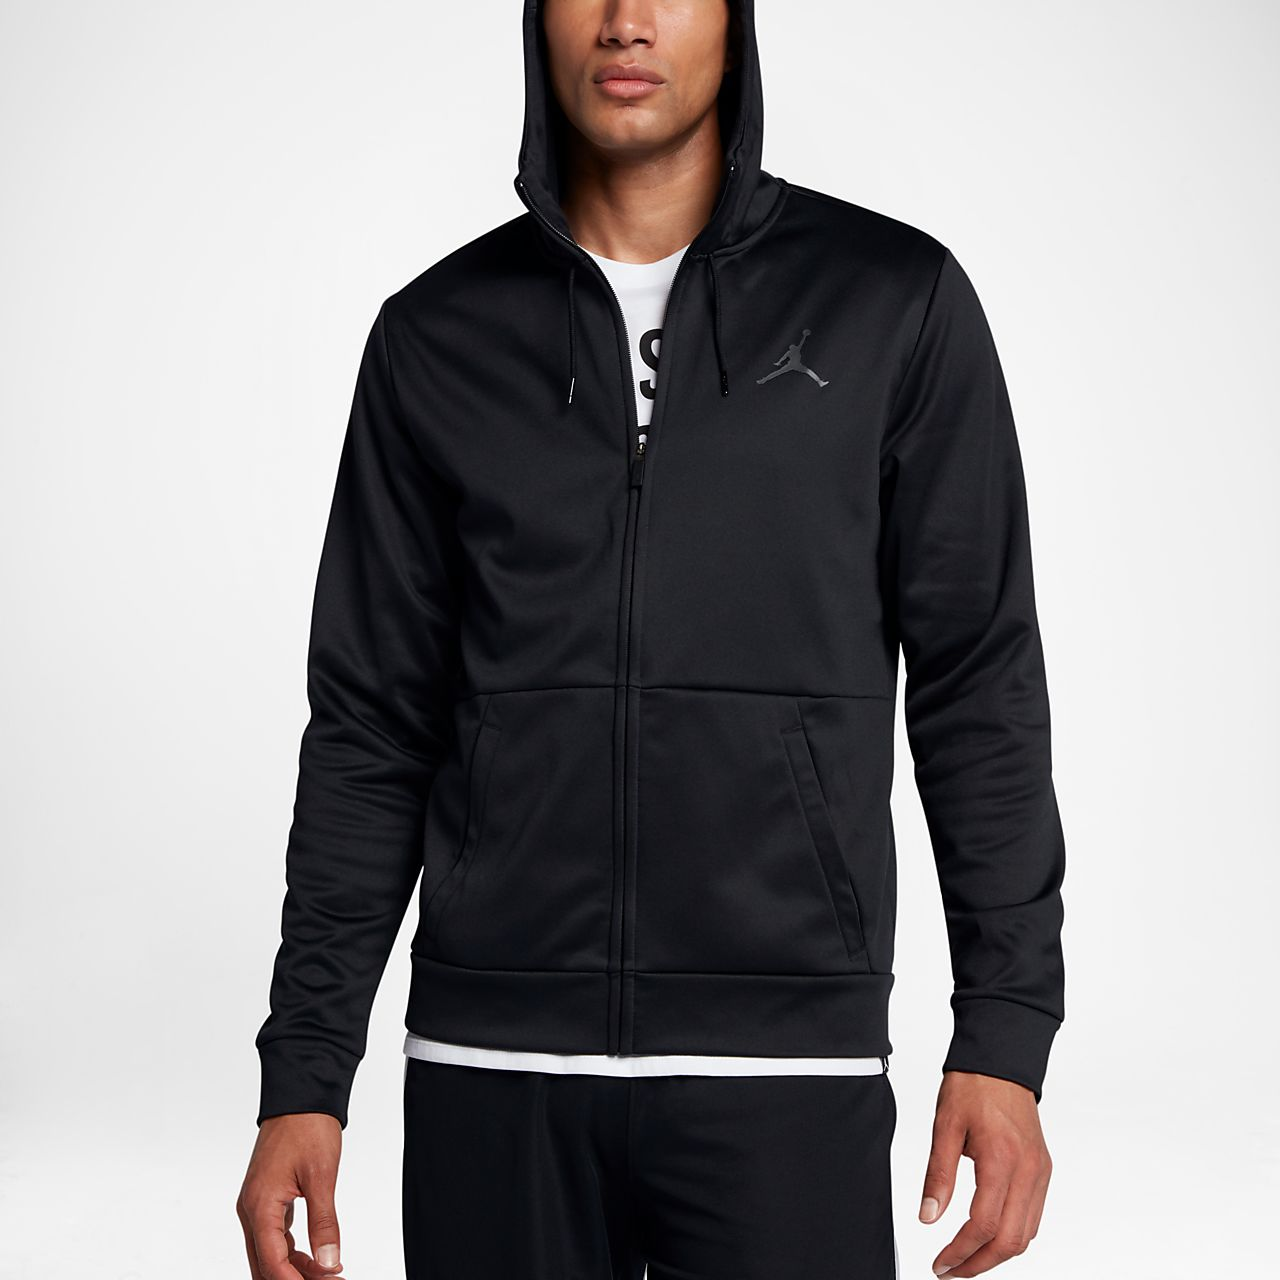 ef35ba993f4d Jordan Therma 23 Alpha Men s Full-Zip Hoodie. Nike.com EG